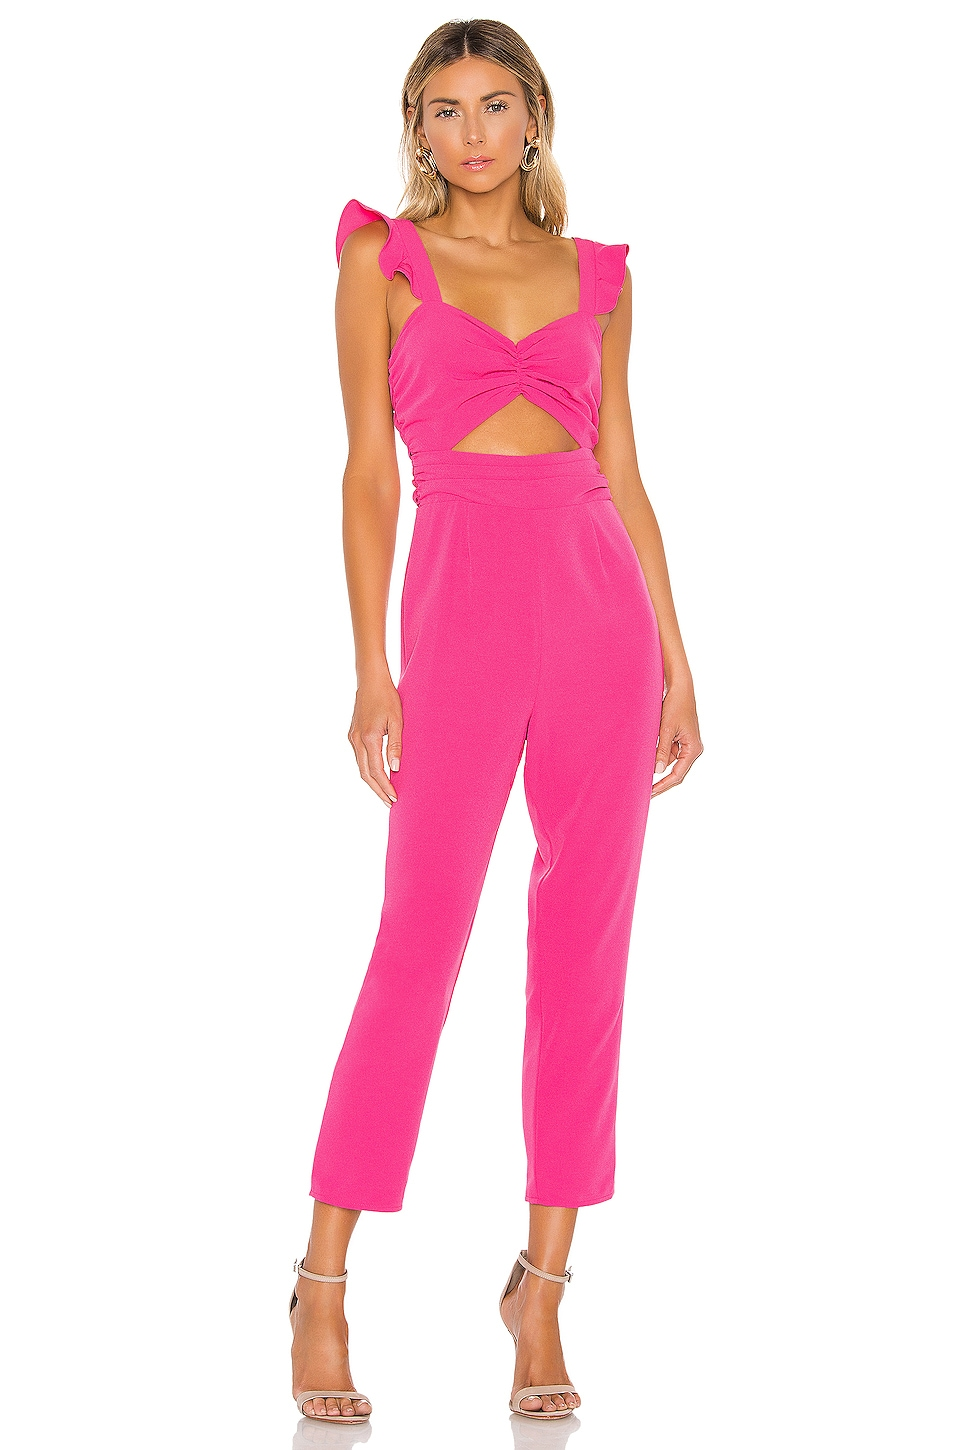 Lovers + Friends Knox Jumpsuit in Hot Pink